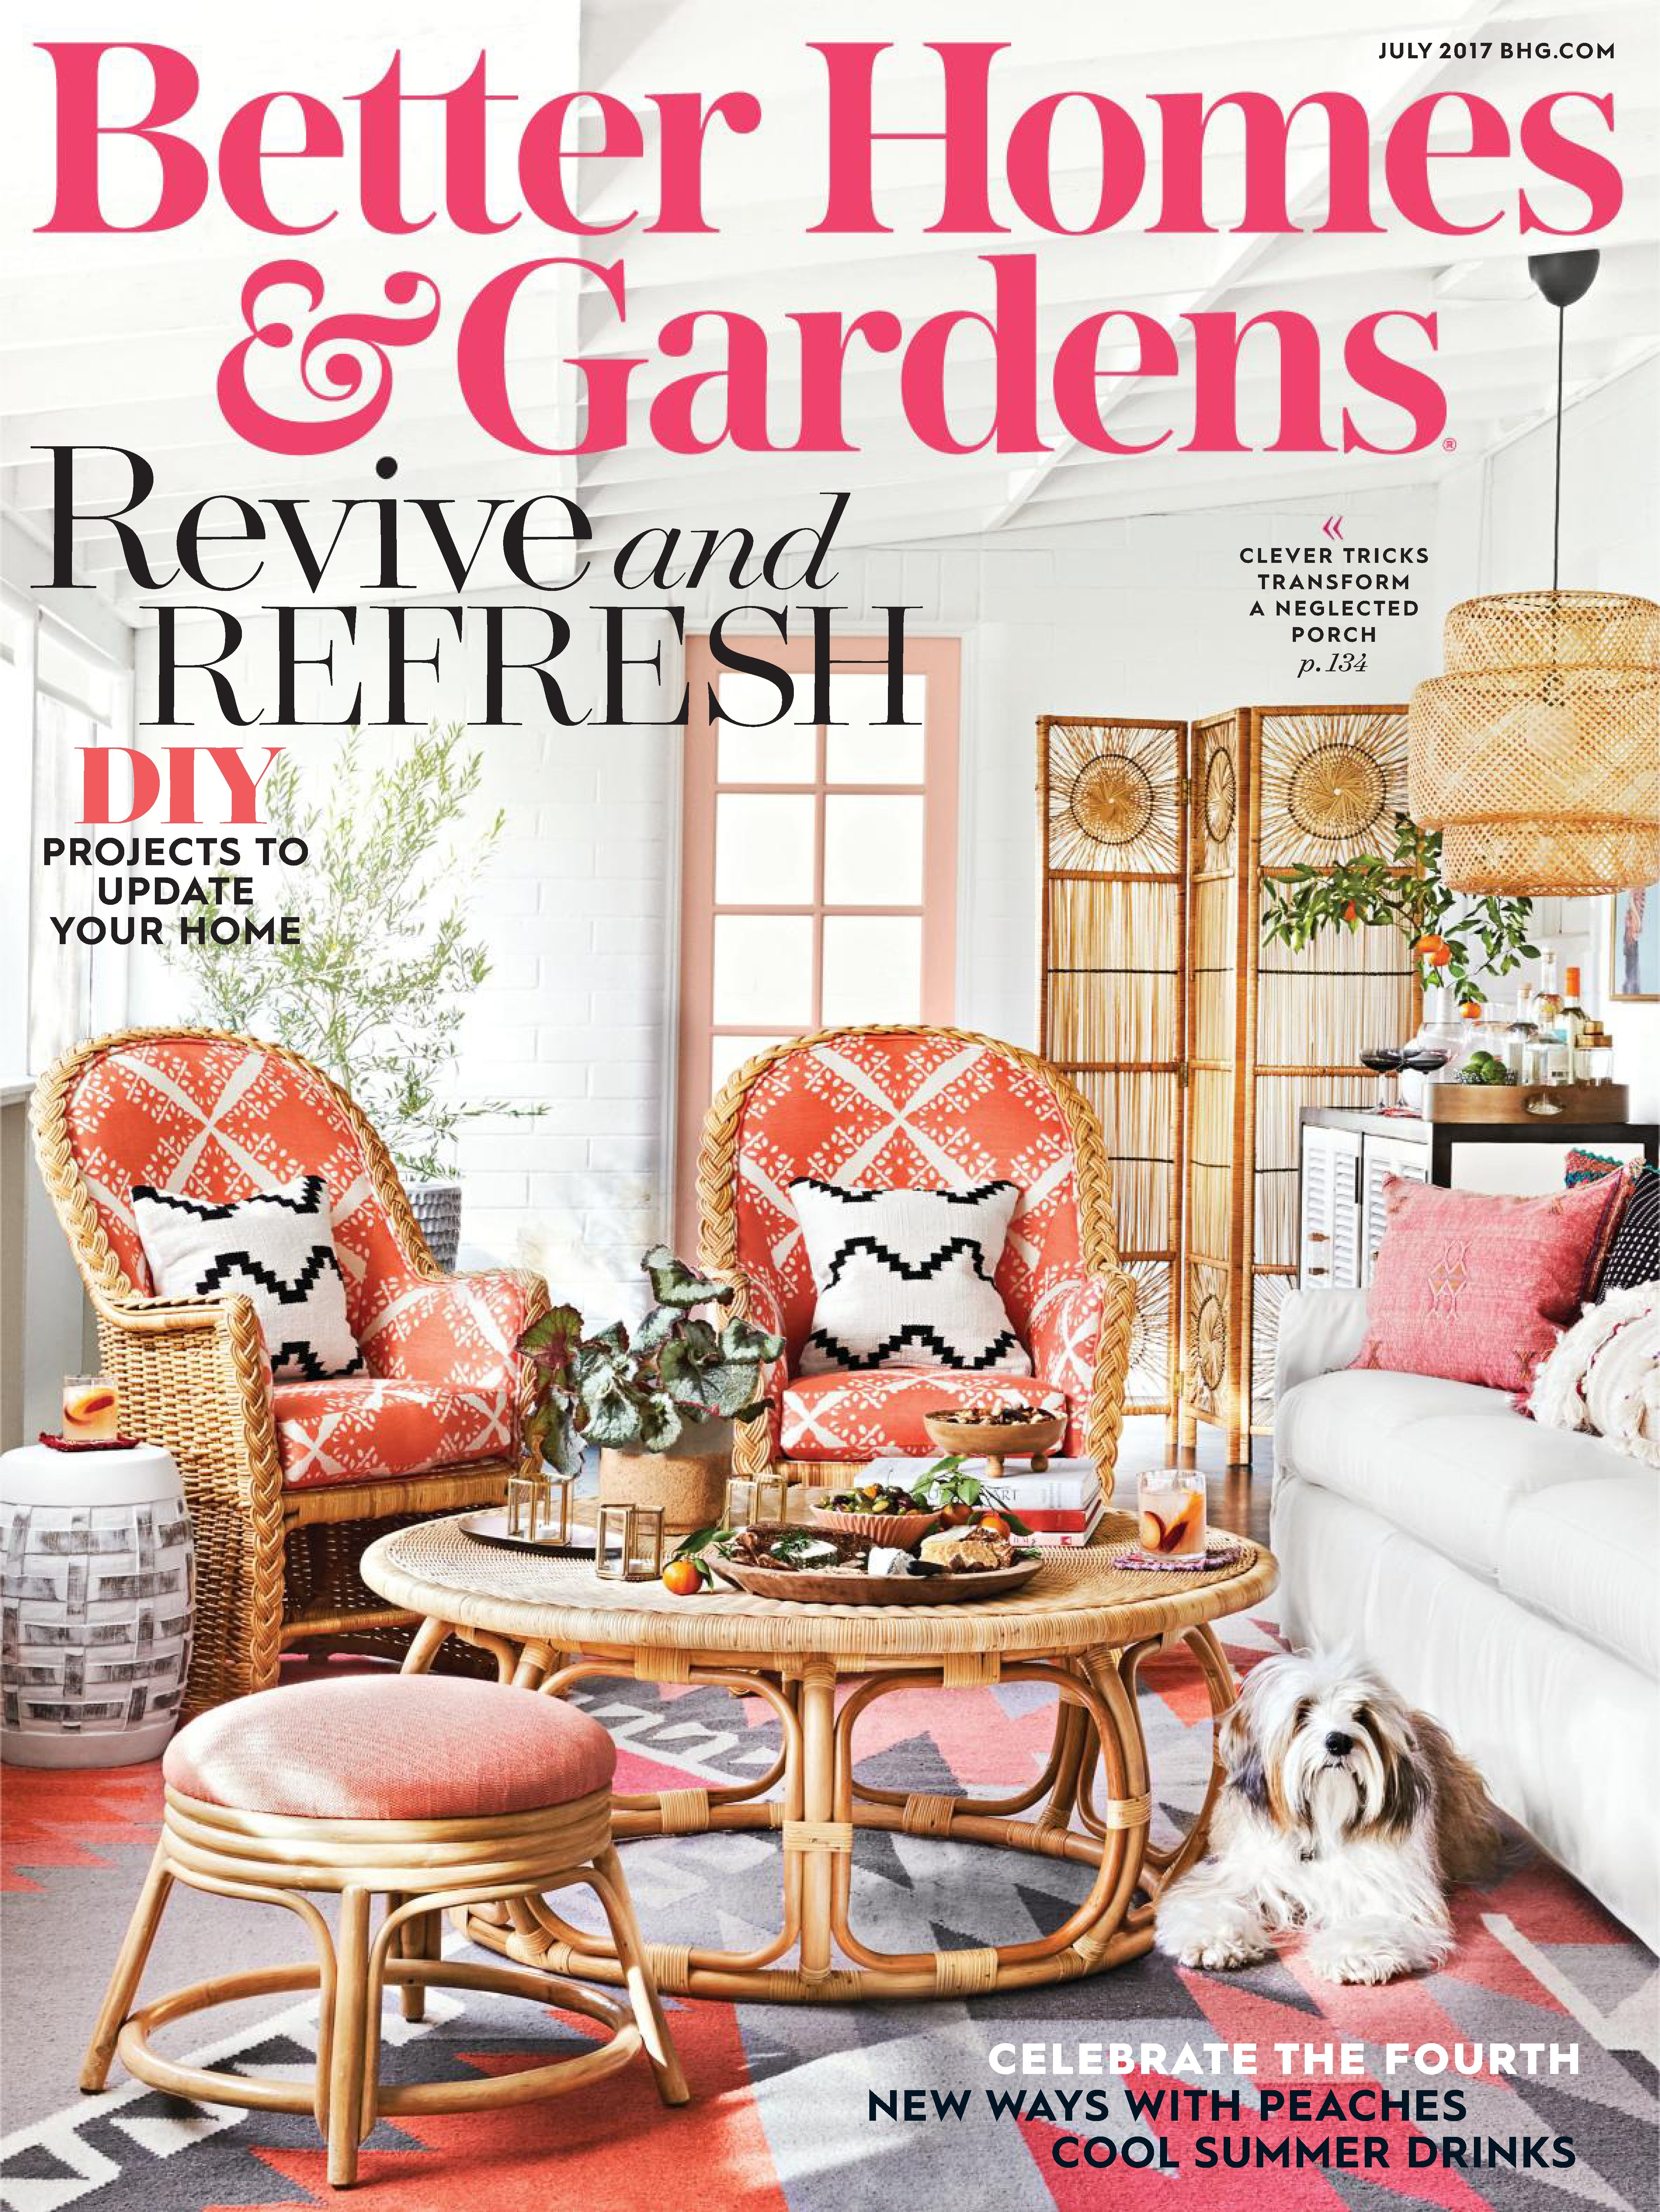 Good June 2017 Back Issue Of Better Homes And Gardens   Zinio.com Great Pictures